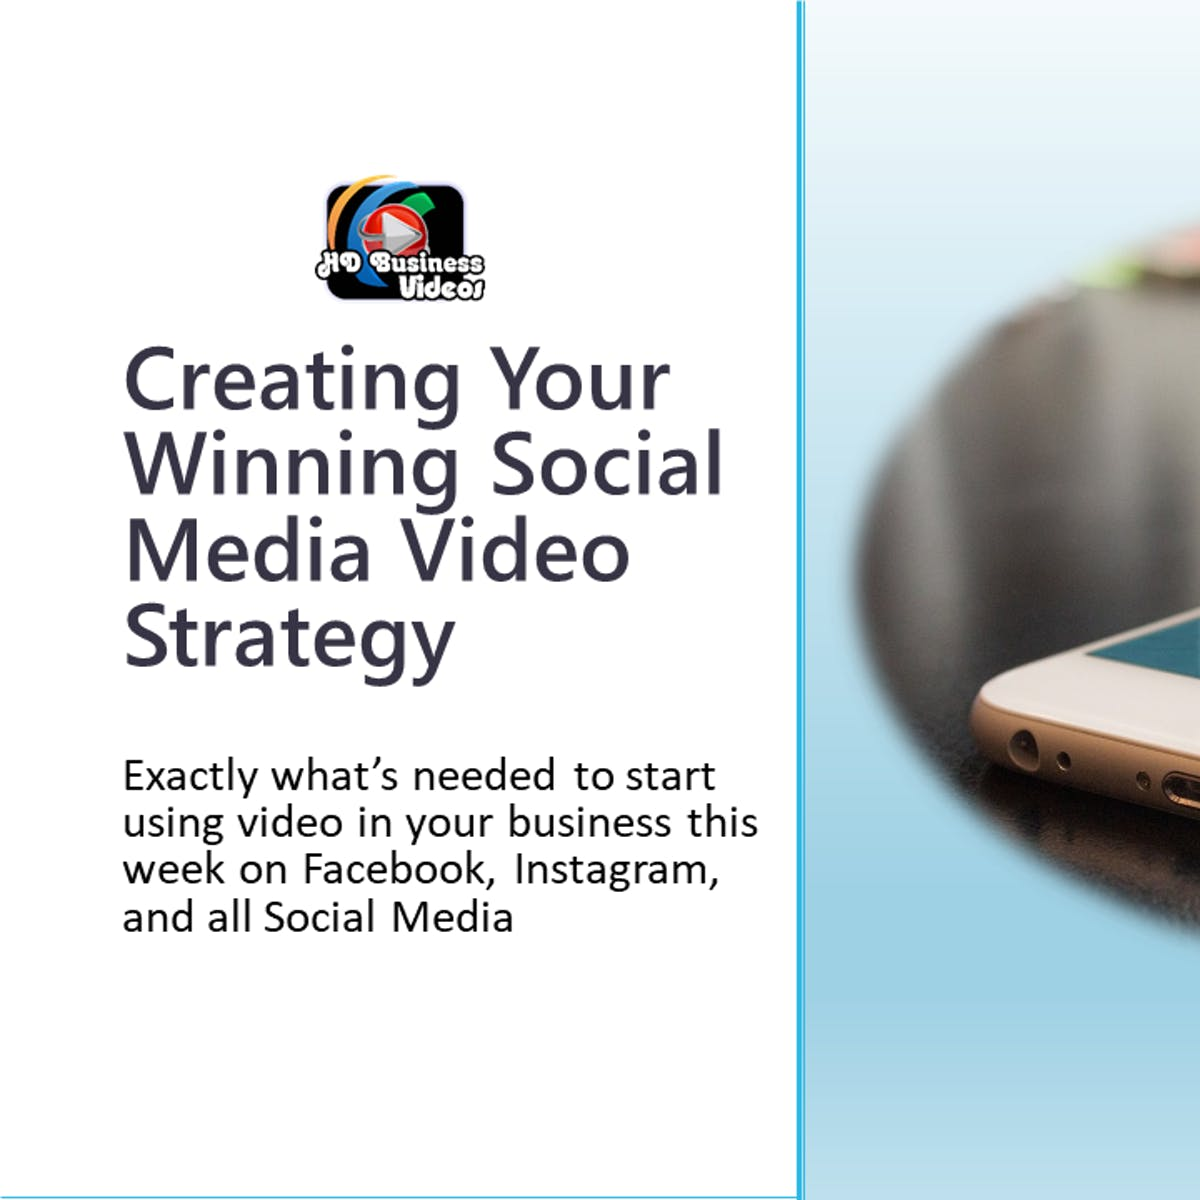 Creating Your Winning Social Media Video Strategy